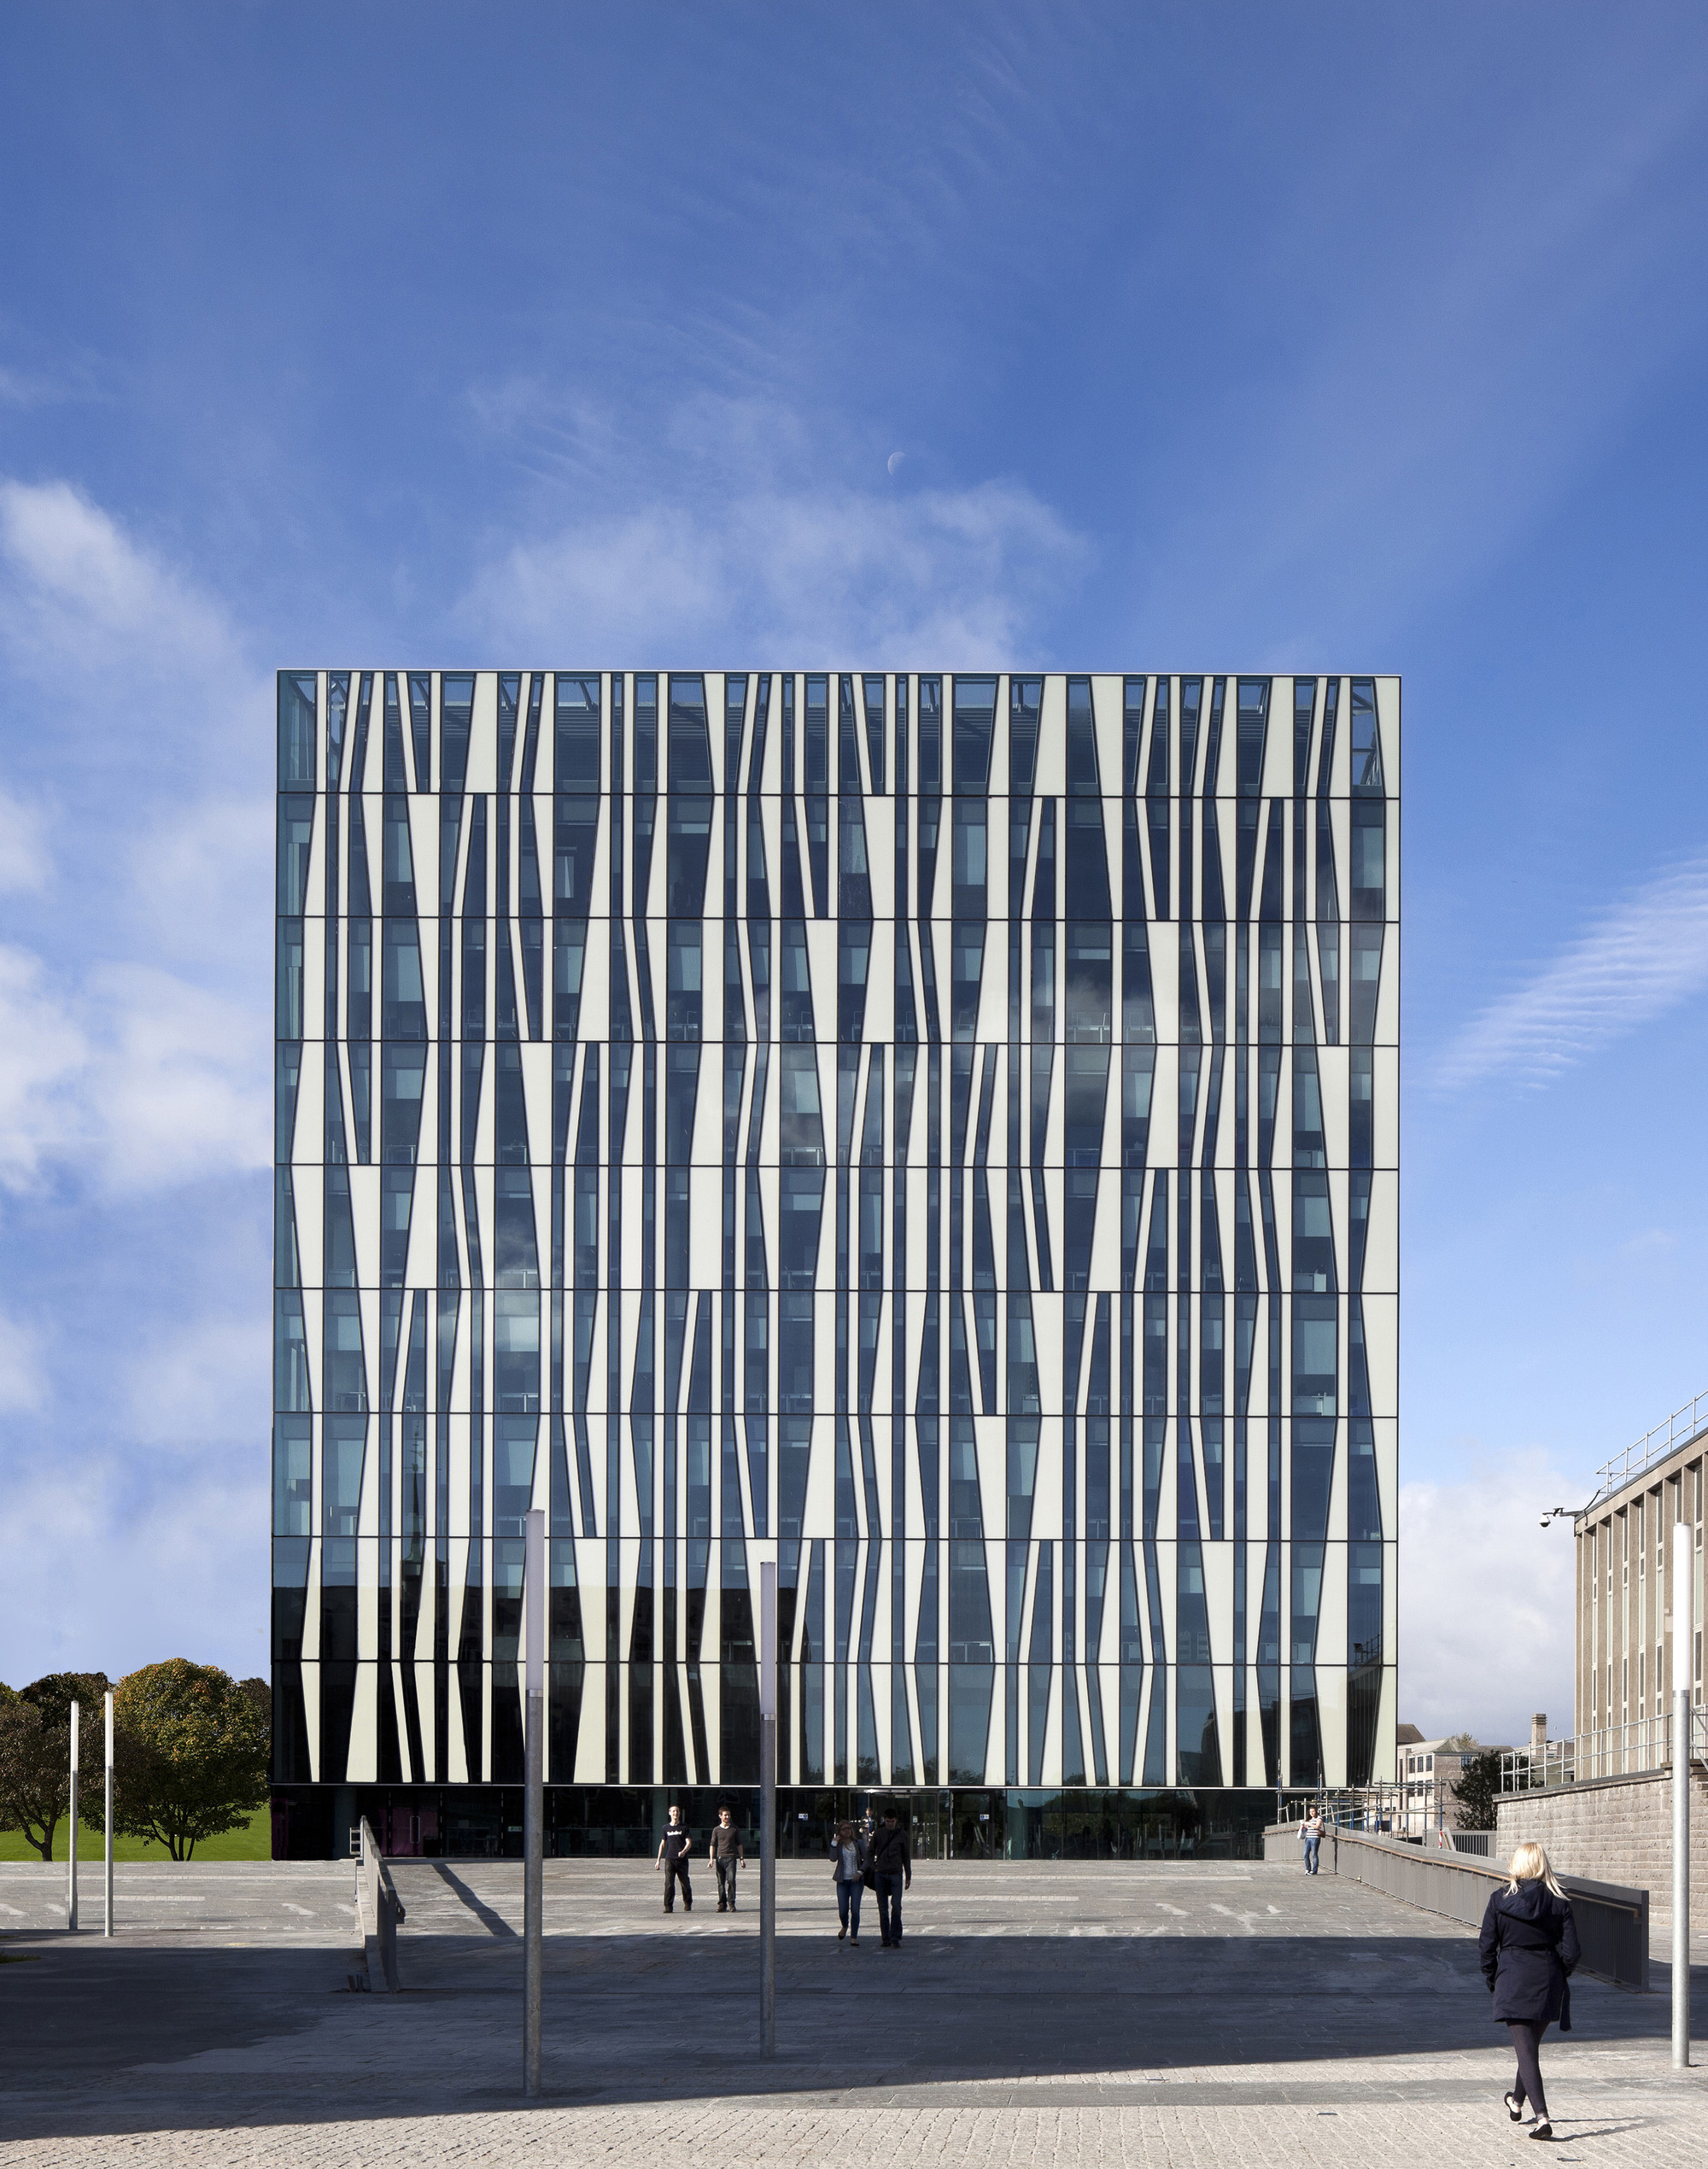 University of aberdeen new library schmidt hammer lassen for U of a architecture building